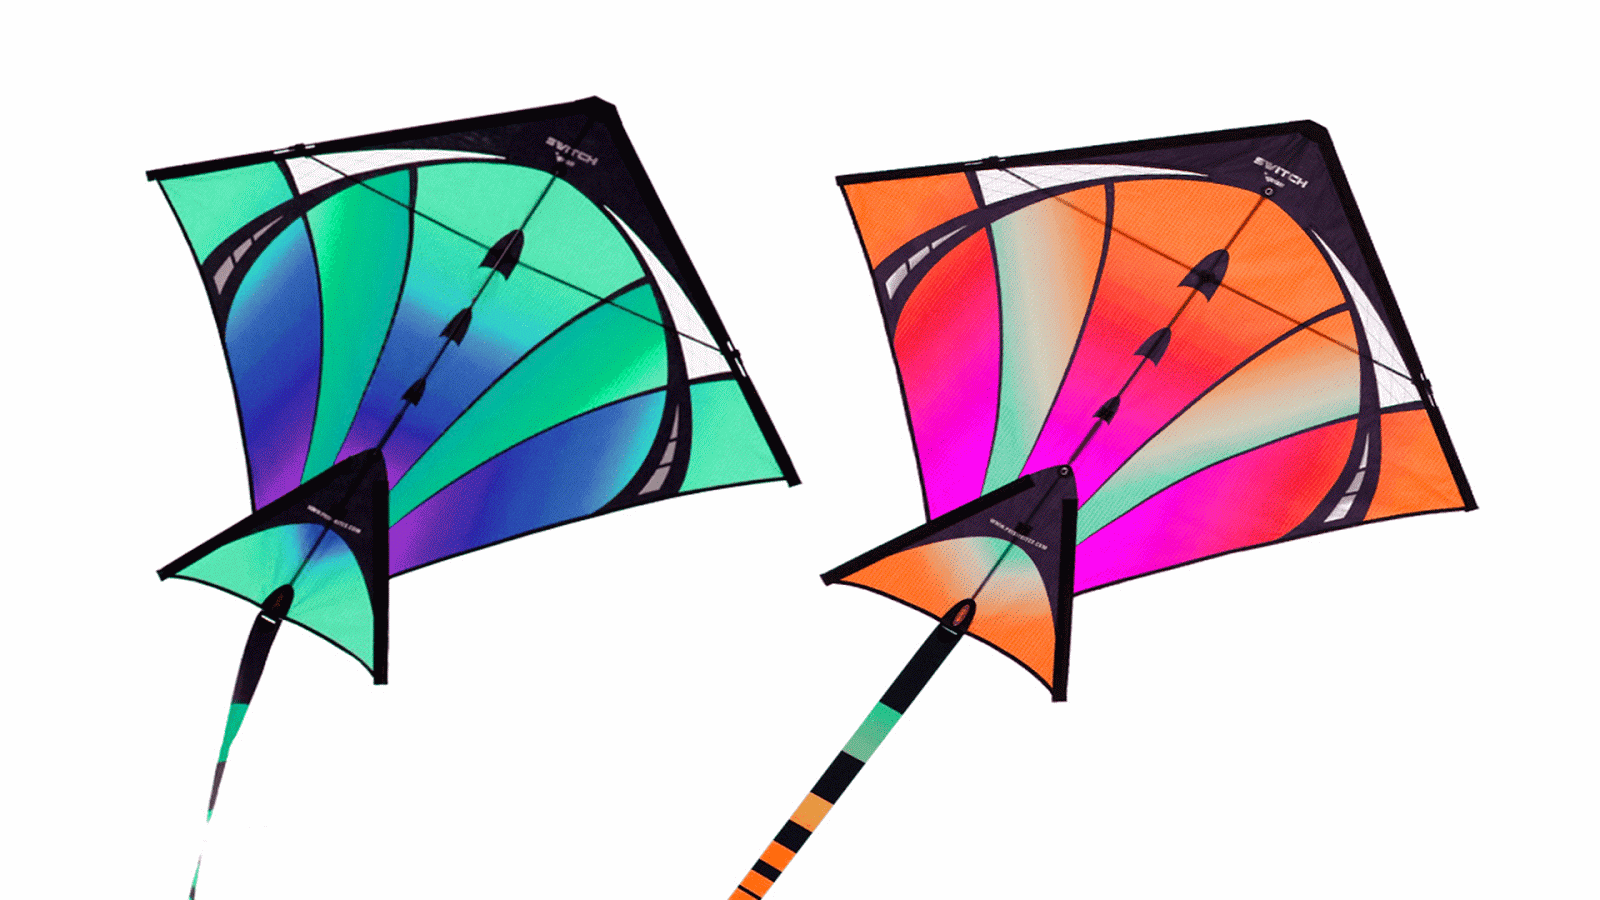 kite flying wallpaper - Kite PNG HD Images